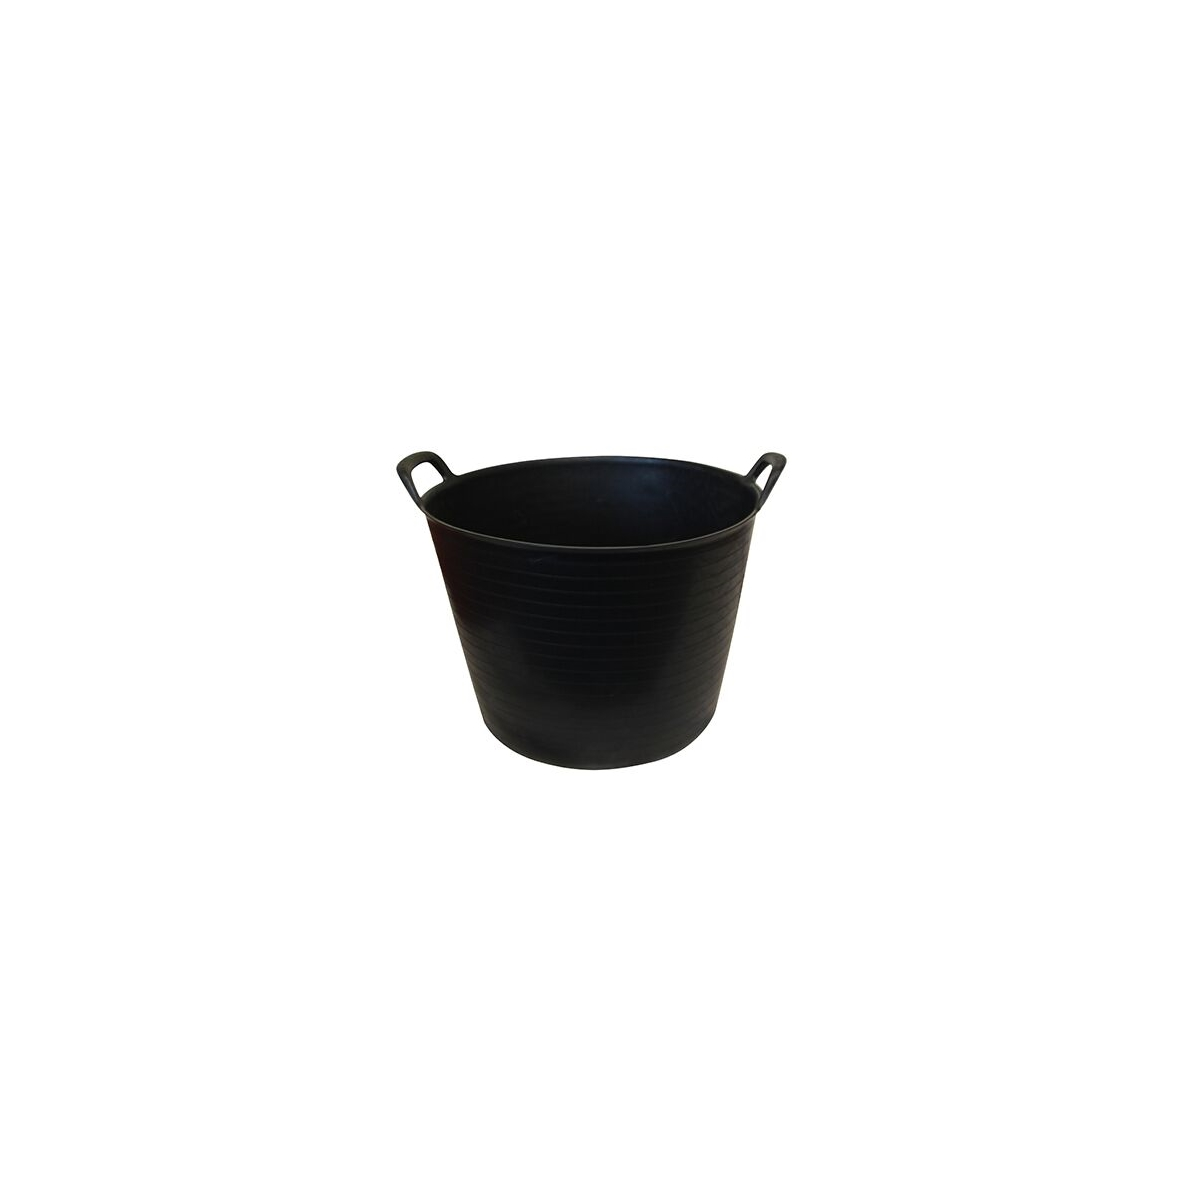 40LTR ECONOMY BLACK FLEXI BUCKET